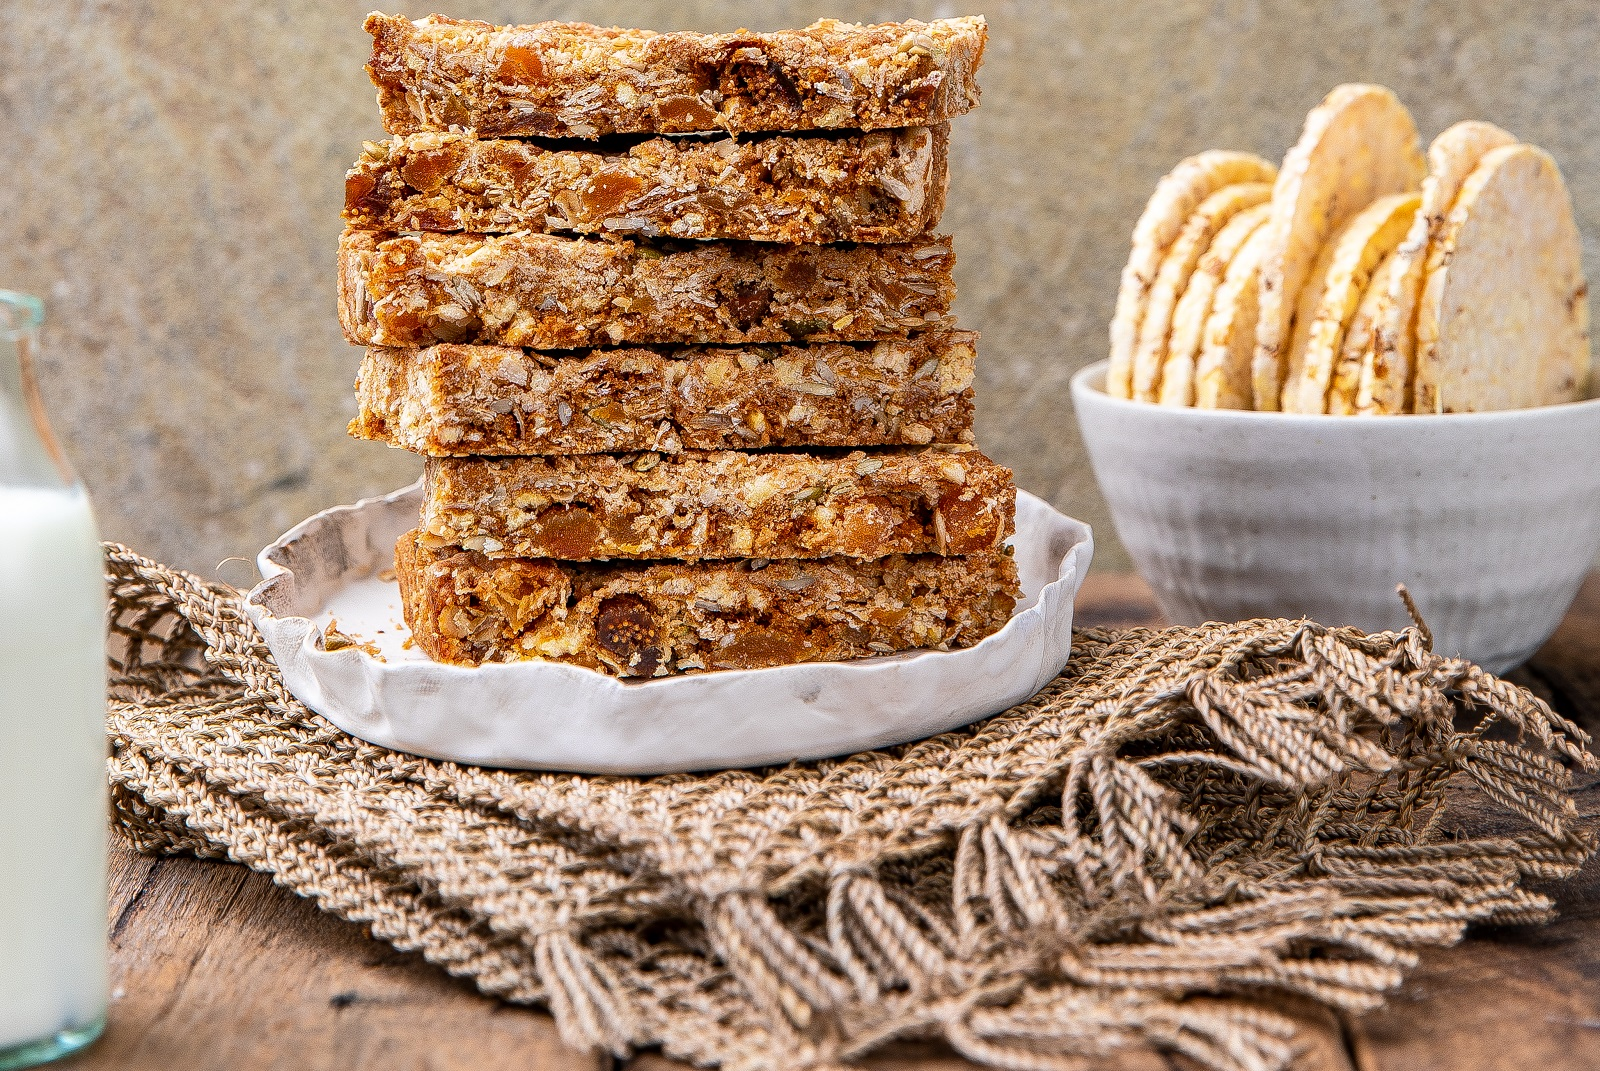 Muesli bars using CORN THINS, or Ancient Grains slices